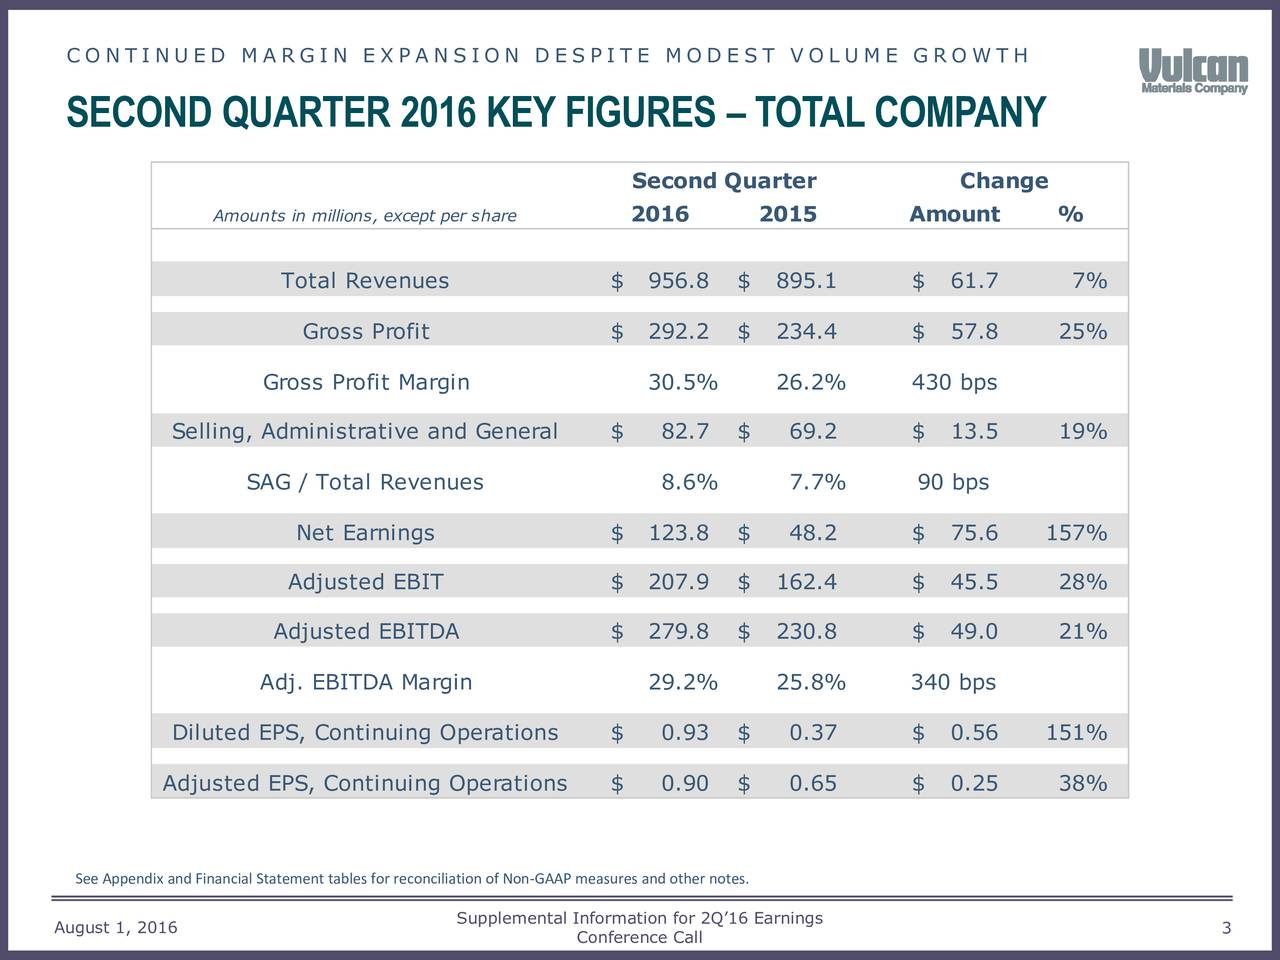 SECOND QUARTER 2016 KEYFIGURES  TOTAL COMPANY Second Quarter Change Amounts in millions, except per s2016 2015 Amount % Total Revenues $ 956.8 $ 895.1 $ 61.7 7% Gross Profit $ 292.2 $ 234.4 $ 57.8 25% Gross Profit Margin 30.5% 26.2% 430 bps Selling, Administrative and General$ 82.7 $ 69.2 $ 13.5 19% SAG / Total Revenues 8.6% 7.7% 90 bps Net Earnings $ 123.8 $ 48.2 $ 75.6 157% Adjusted EBIT $ 207.9 $ 162.4 $ 45.5 28% Adjusted EBITDA $ 279.8 $ 230.8 $ 49.0 21% Adj. EBITDA Margin 29.2% 25.8% 340 bps Diluted EPS, Continuing Operations $ 0.93 $ 0.37 $ 0.56 151% Adjusted EPS, Continuing Operations$ 0.90 $ 0.65 $ 0.25 38% See Appendix and Financial Statement tables for reconciliation of Non-GAAP measures and other notes. Supplemental Information for 2Q16 Earnings August 1, 2016 Conference Call 3